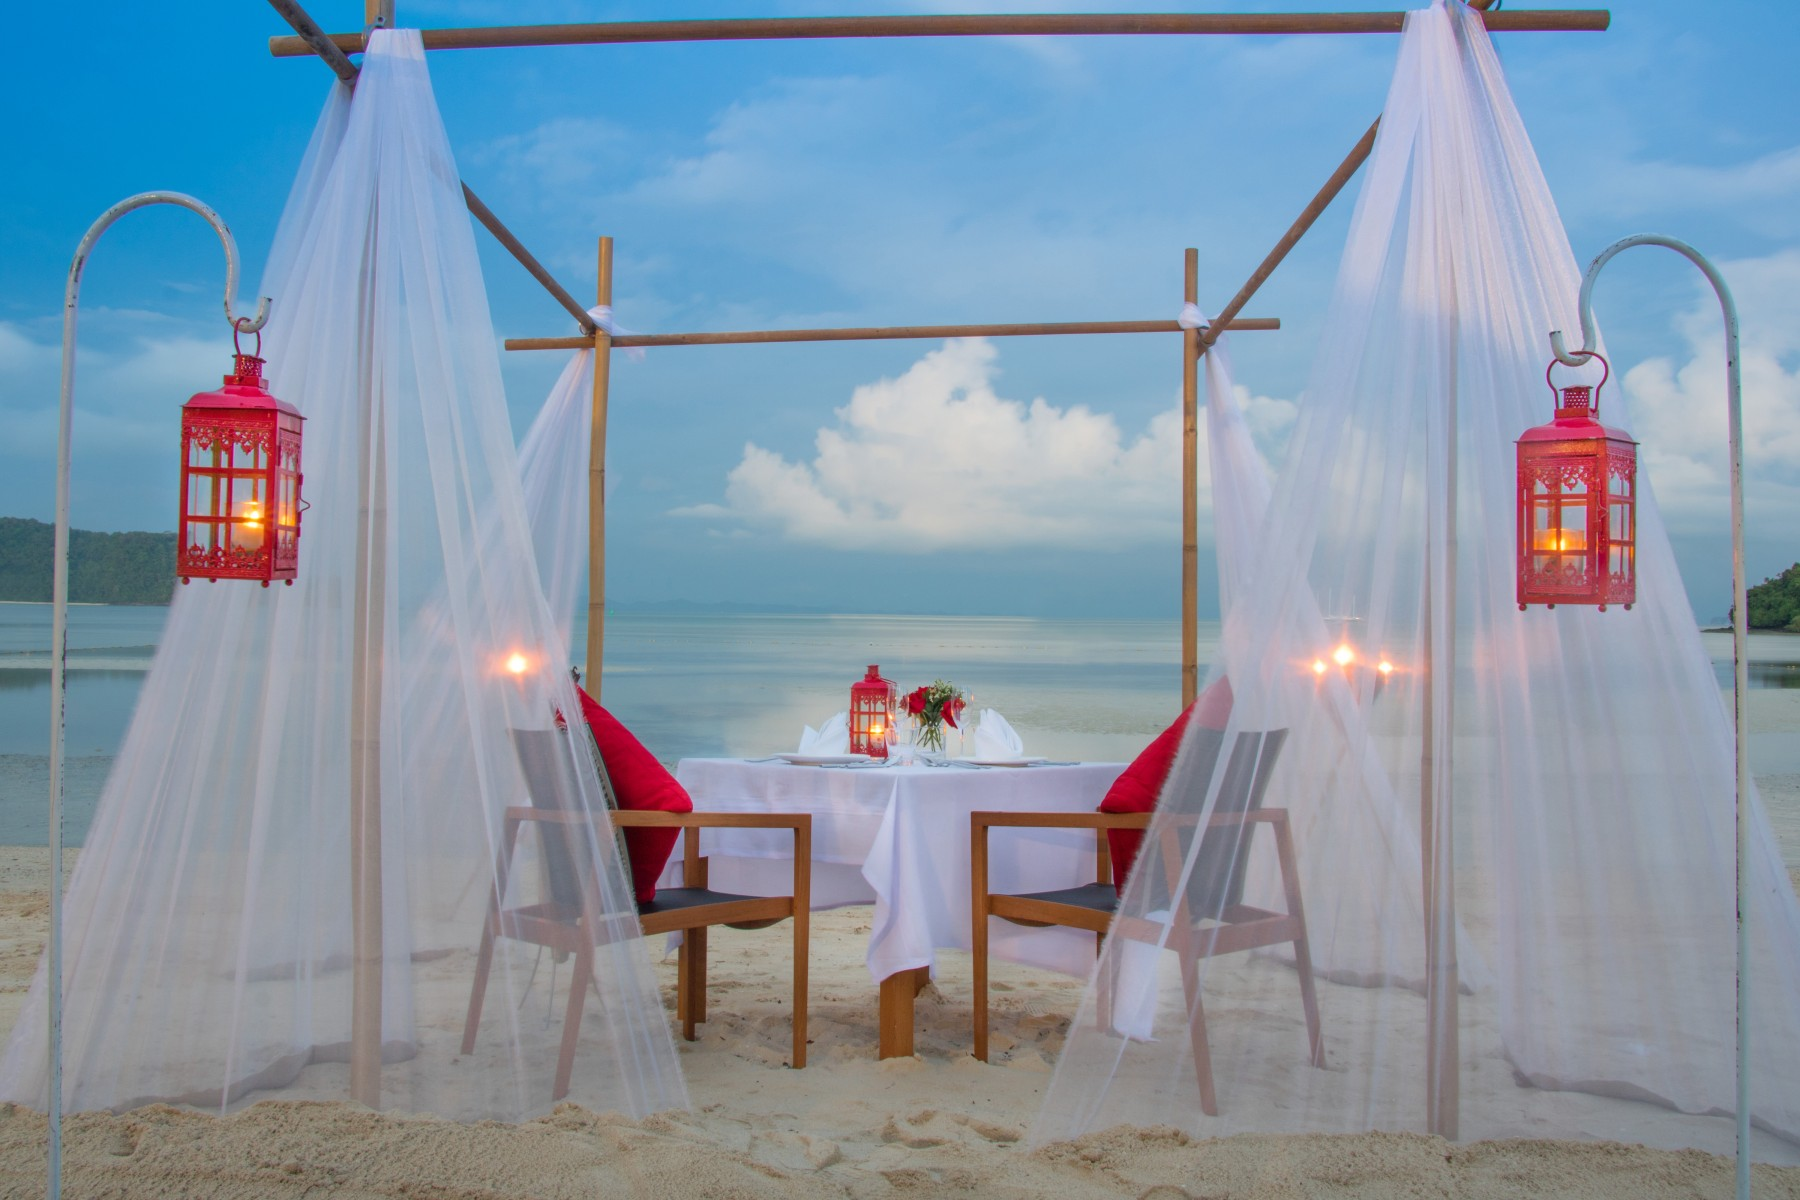 romantic-dinner-imagine-the-2-of-you